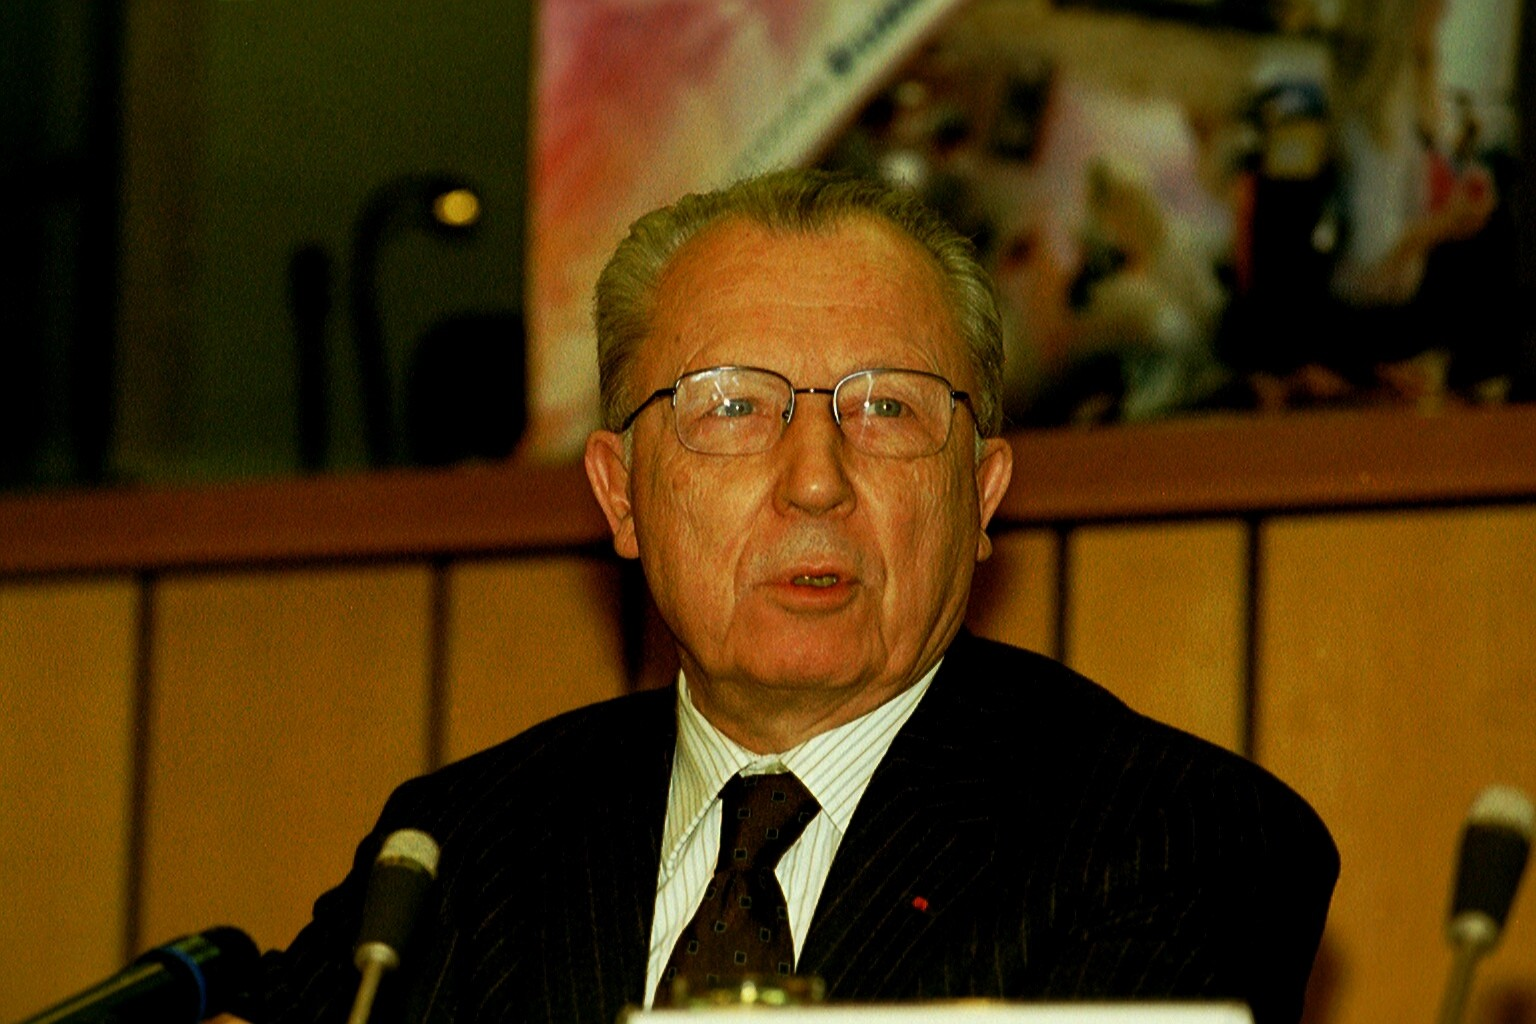 Mr Jacques DELORS, President of the Research and Policy Group Notre Europe